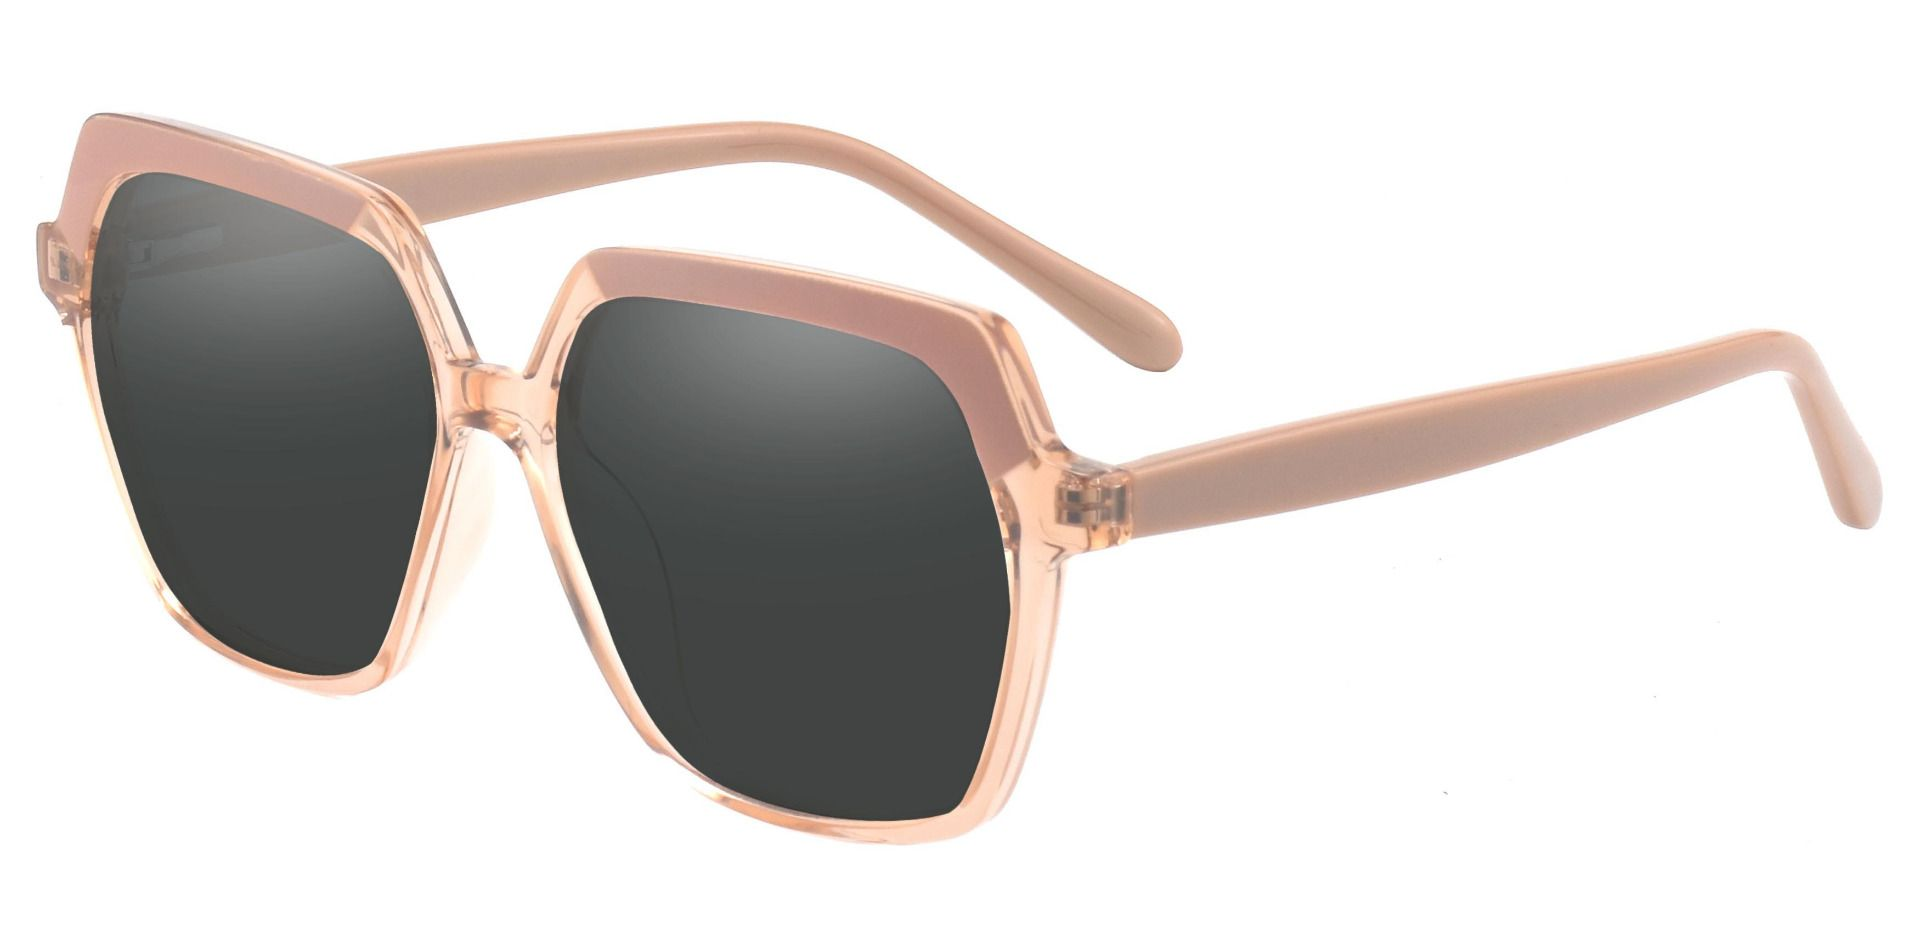 Regent Geometric Non-Rx Sunglasses - Brown Frame With Gray Lenses